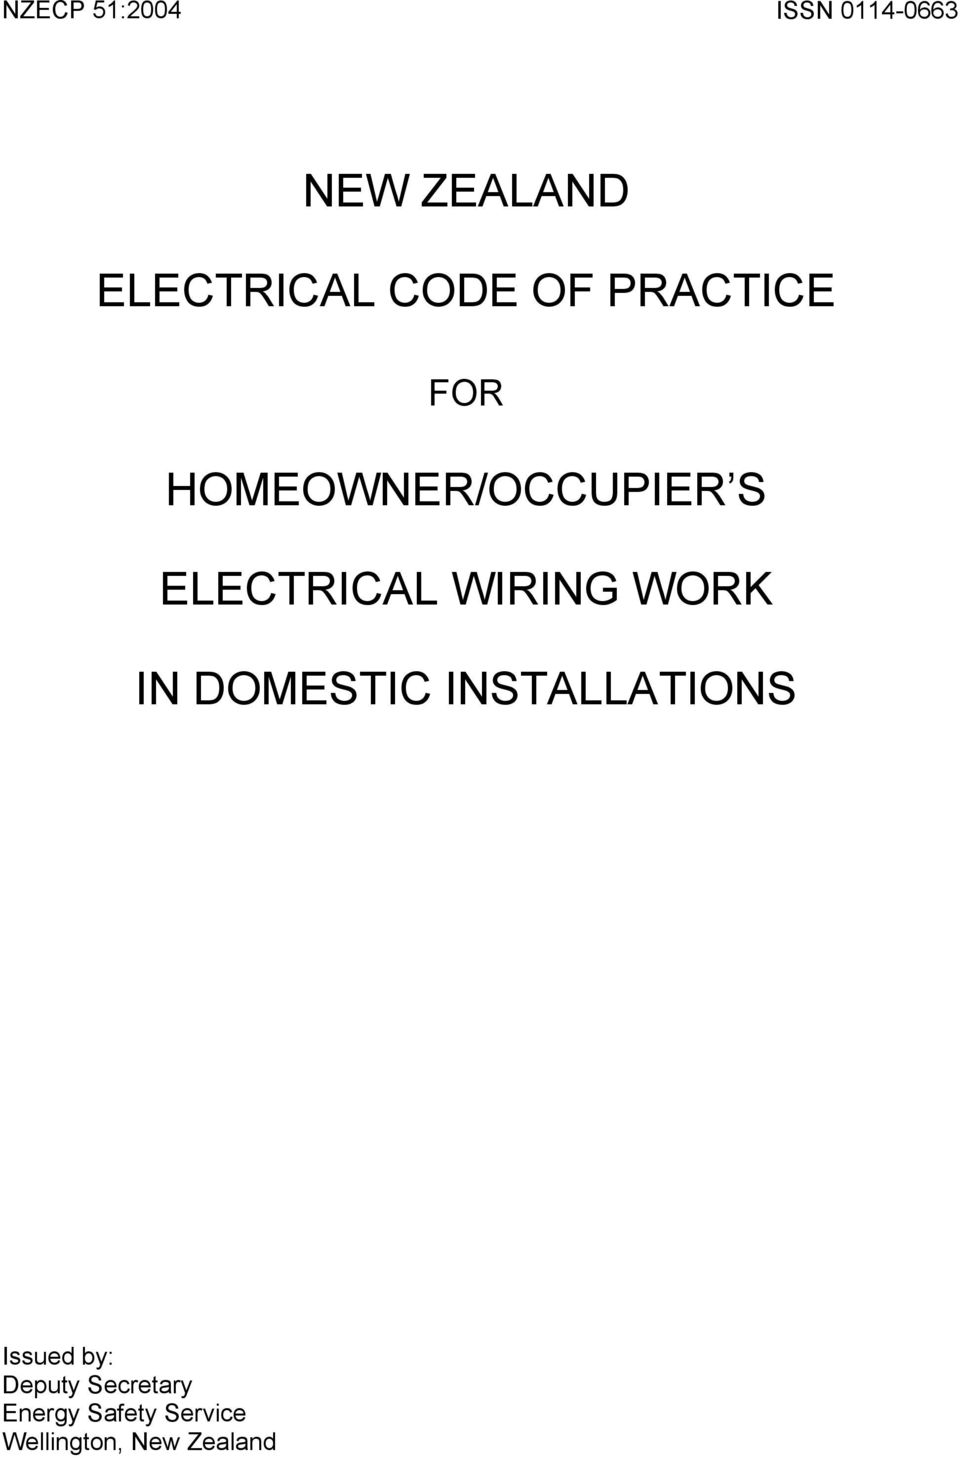 New Zealand Electrical Code Of Practice Homeowner Occupier S Wiring As Well Holder Batten On Telephone Tool Work In Domestic Installations Issued By